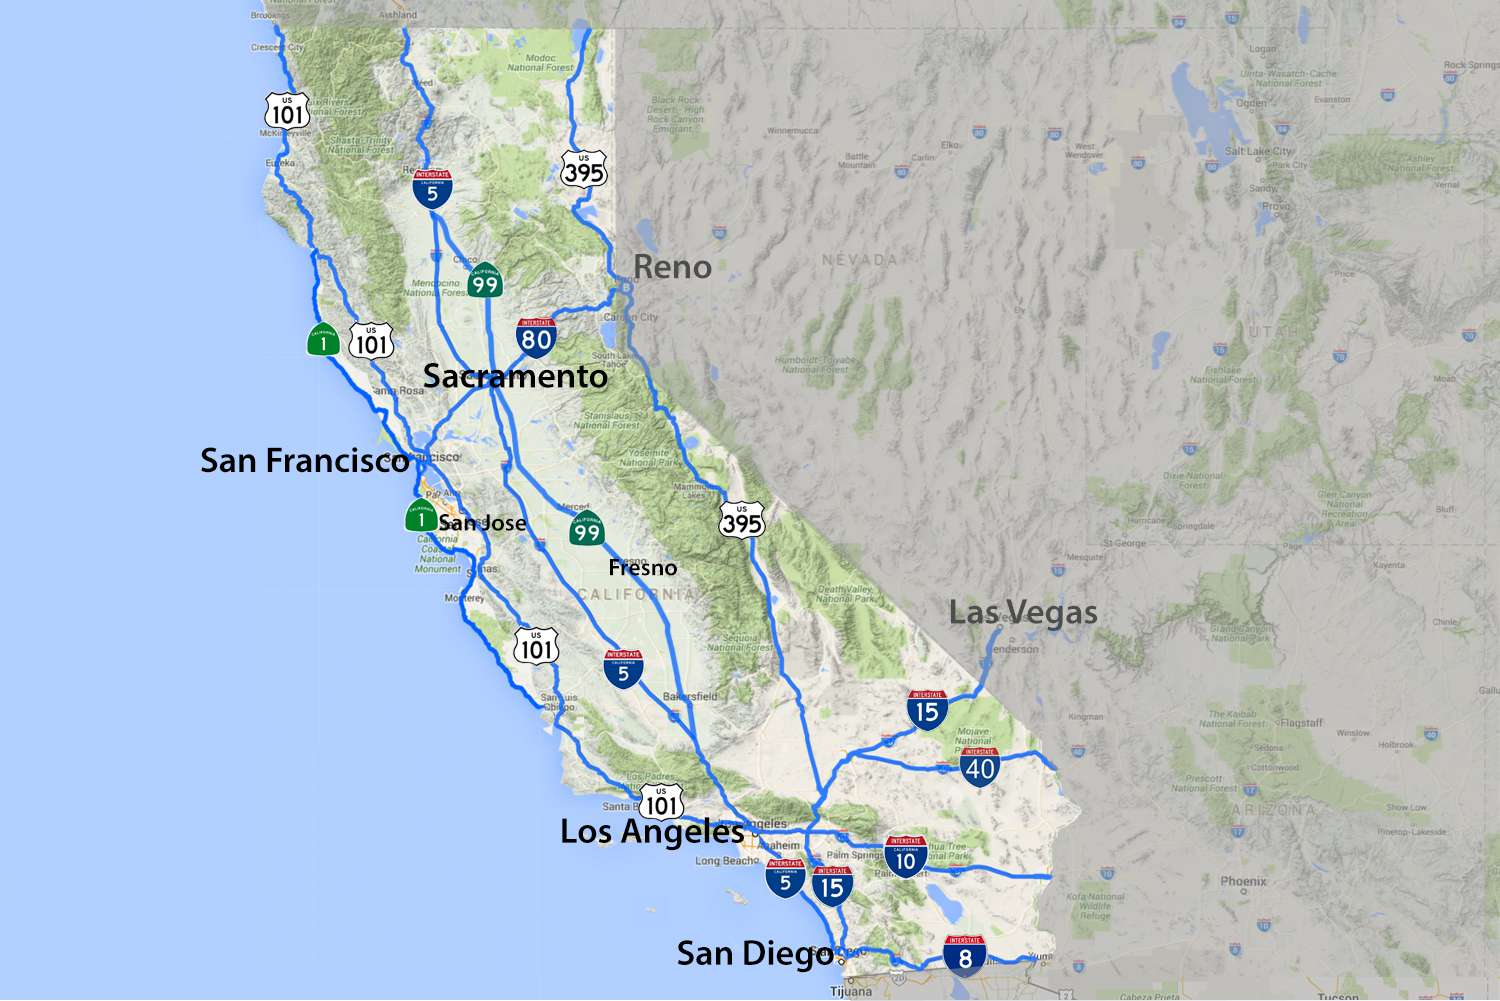 Map Of California Highway 99.Maps Of California Created For Visitors And Travelers